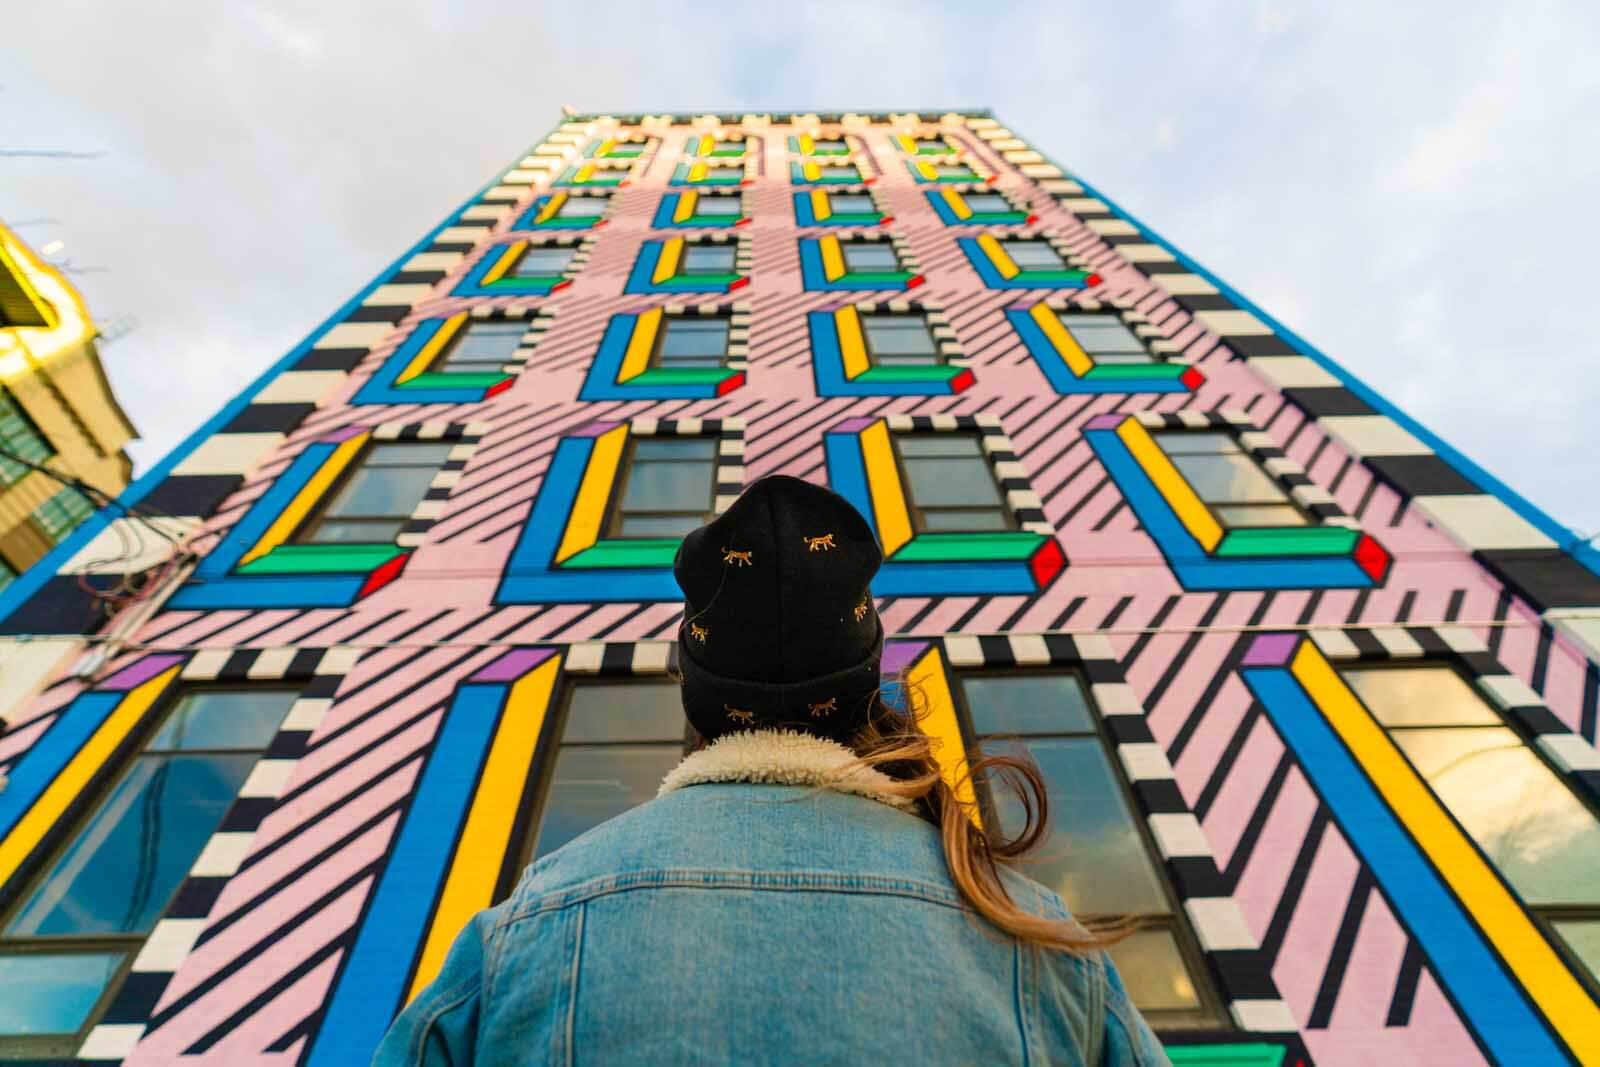 looking up at the mural at Industry City Camille Walala Mural in Brooklyn